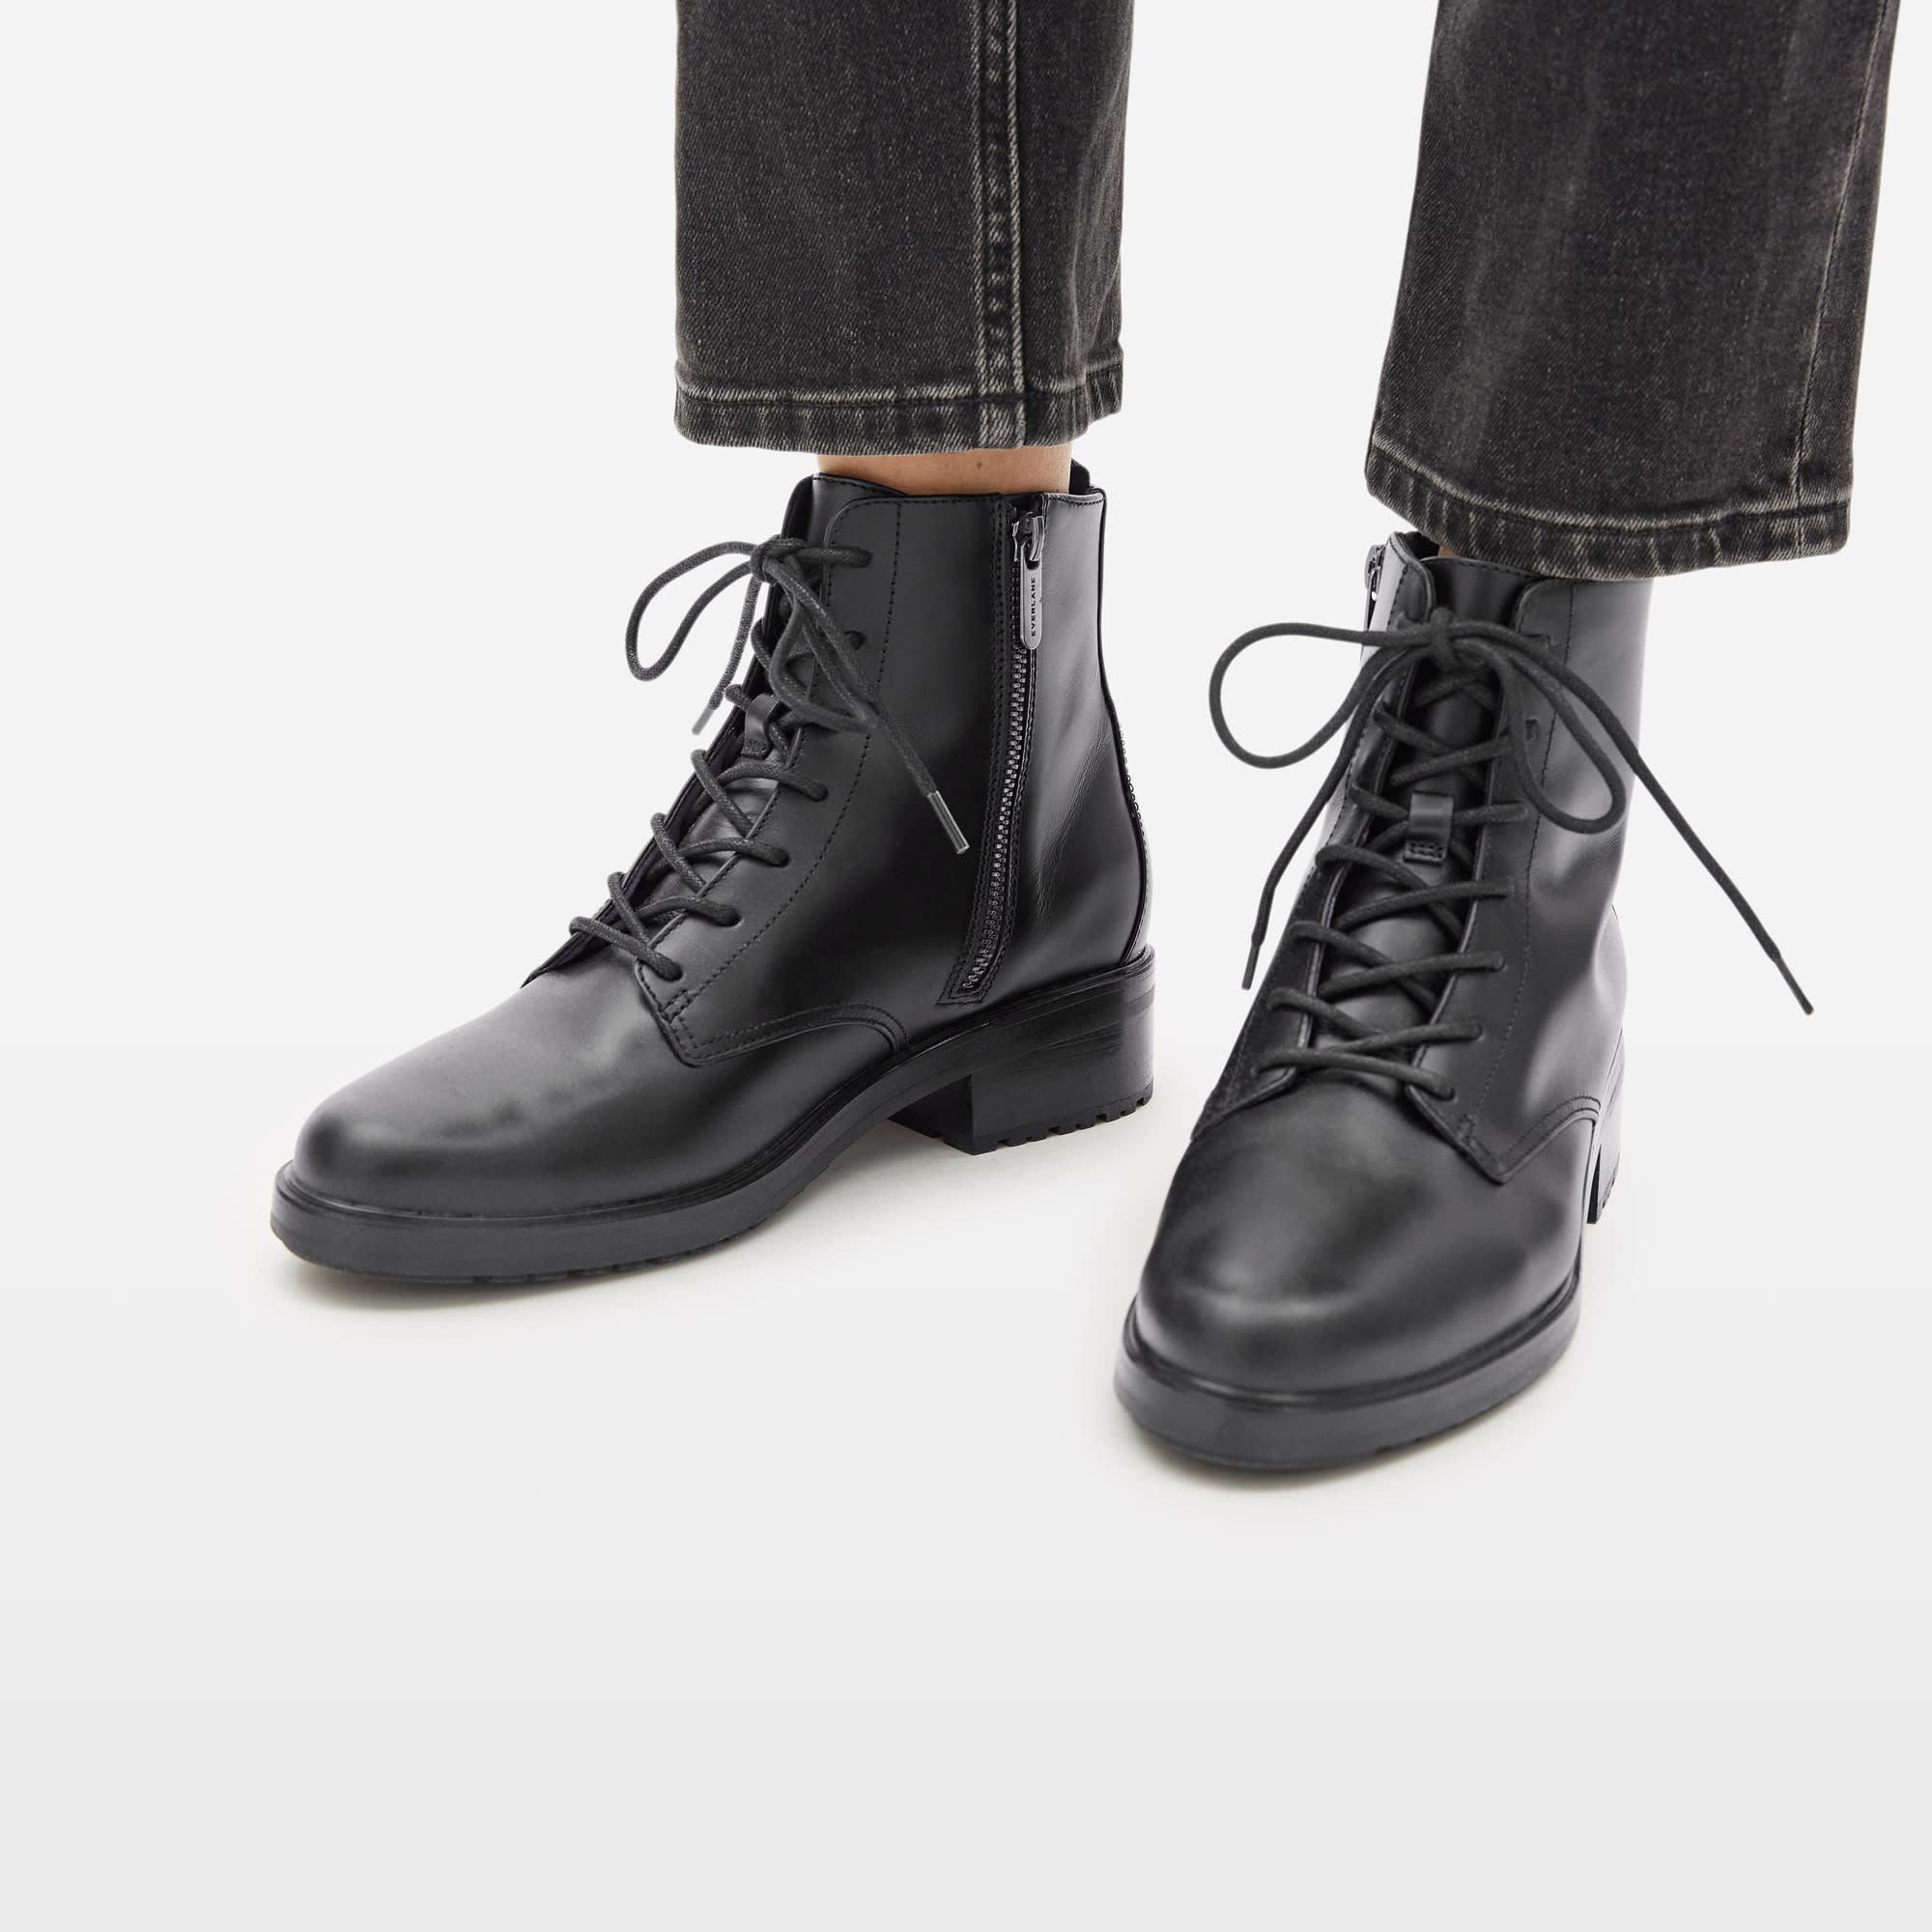 The Modern Utility Lace-Up Boot 4